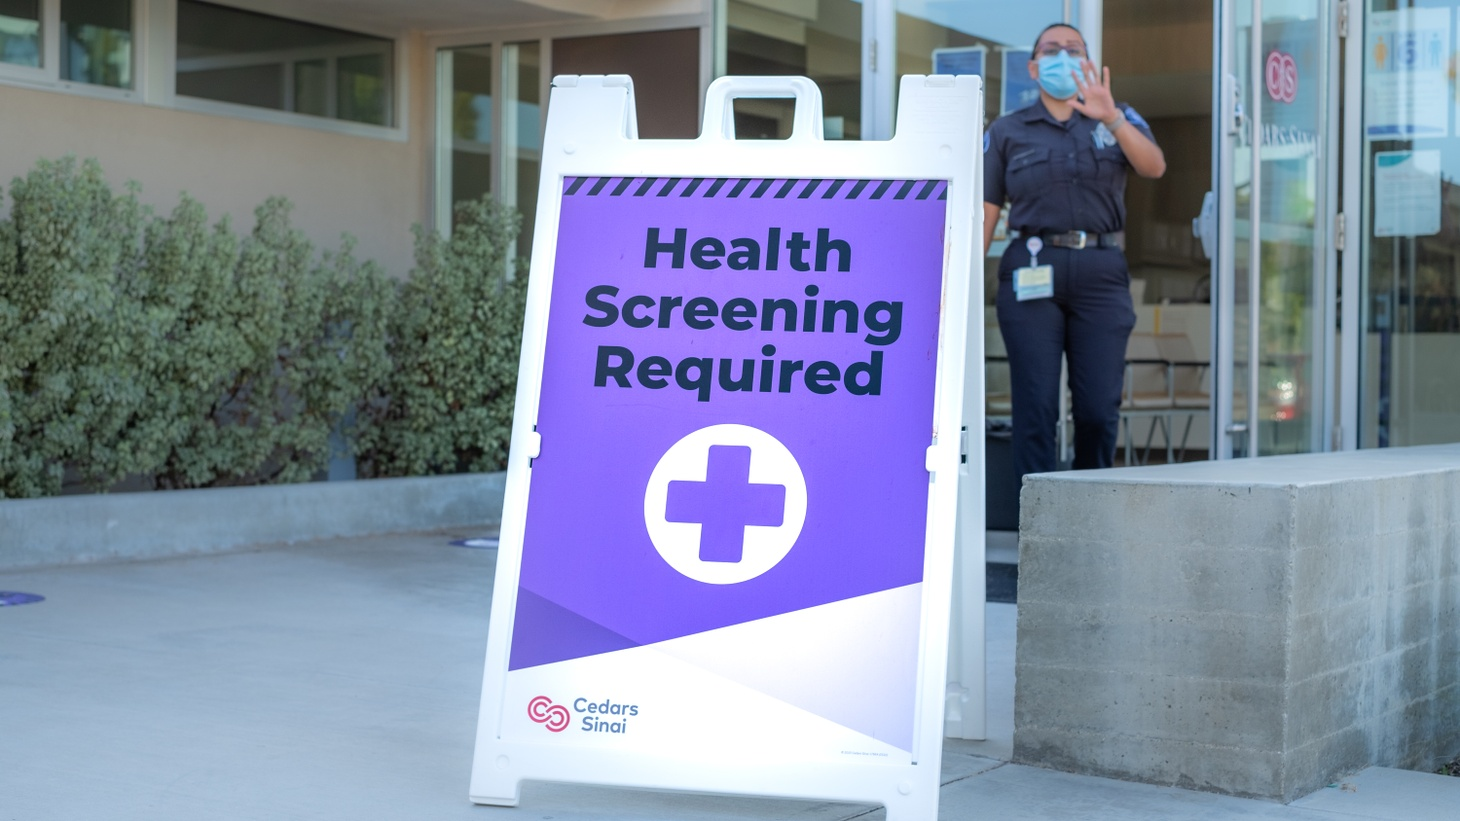 Cedars Sinai Urgent Care in Culver City. New COVID-19 cases and deaths have declined since the peak this summer. But there could be a spike this fall — on top of flu infections.